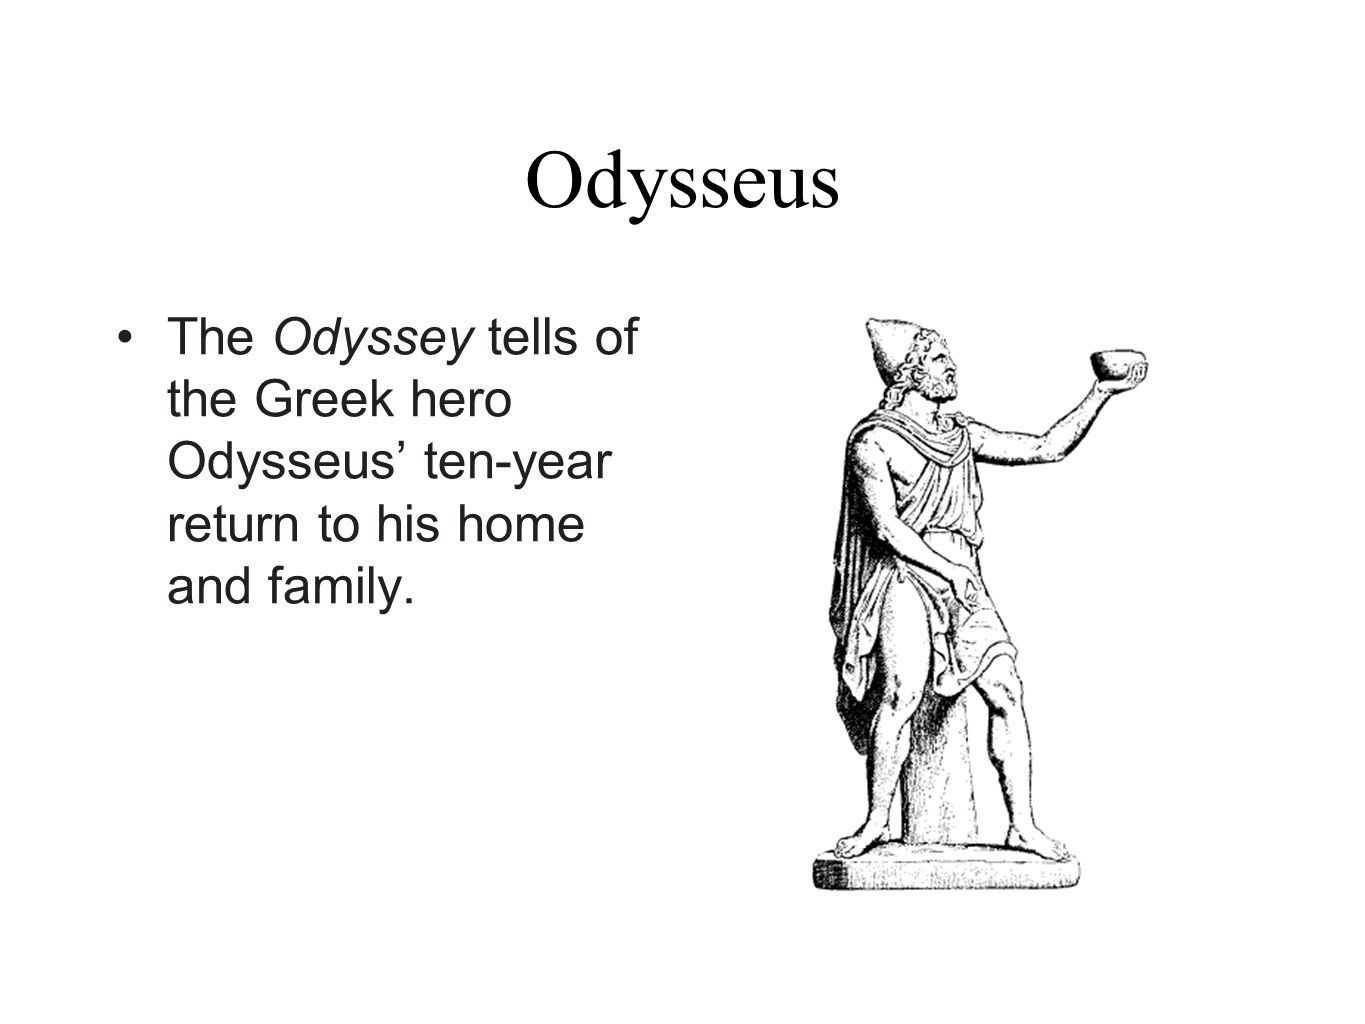 Odysseus The Odyssey tells of the Greek hero Odysseus' ten-year return to his home and family.